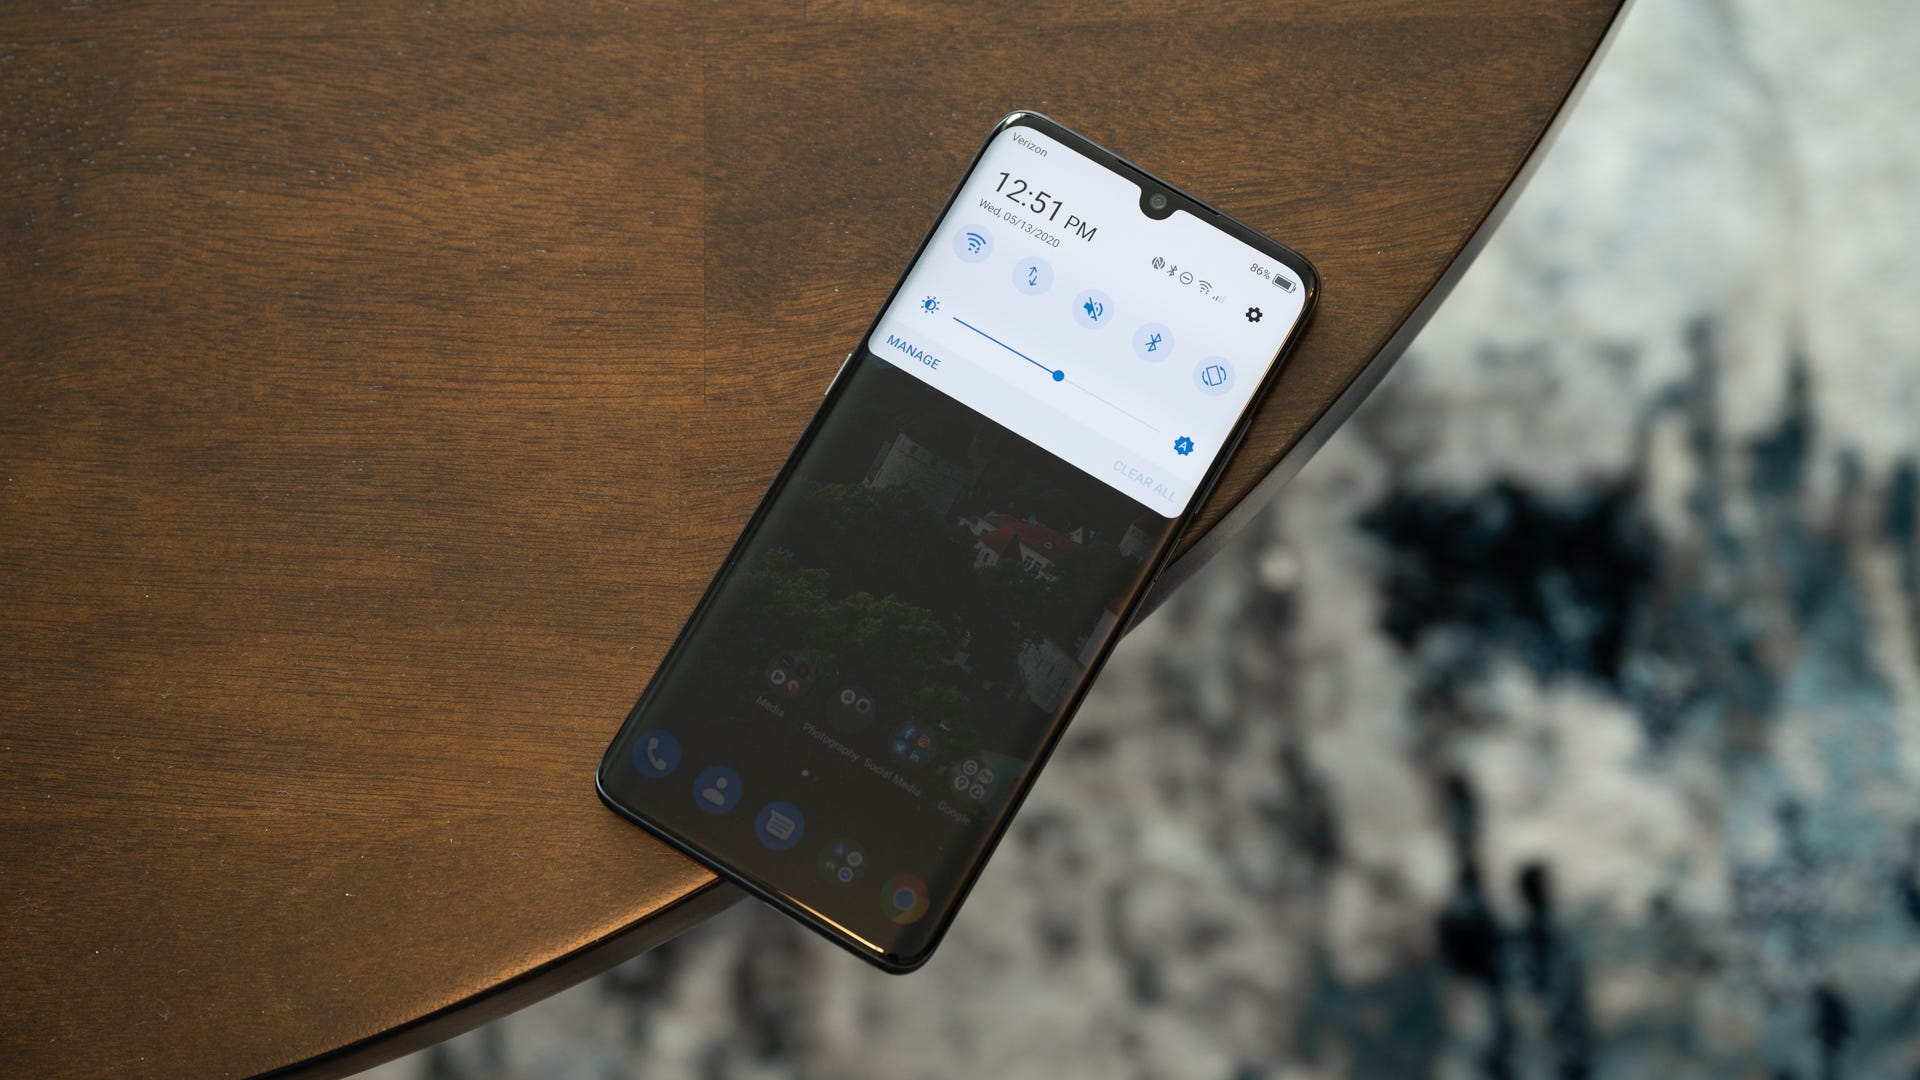 TCL 10 Pro user interface